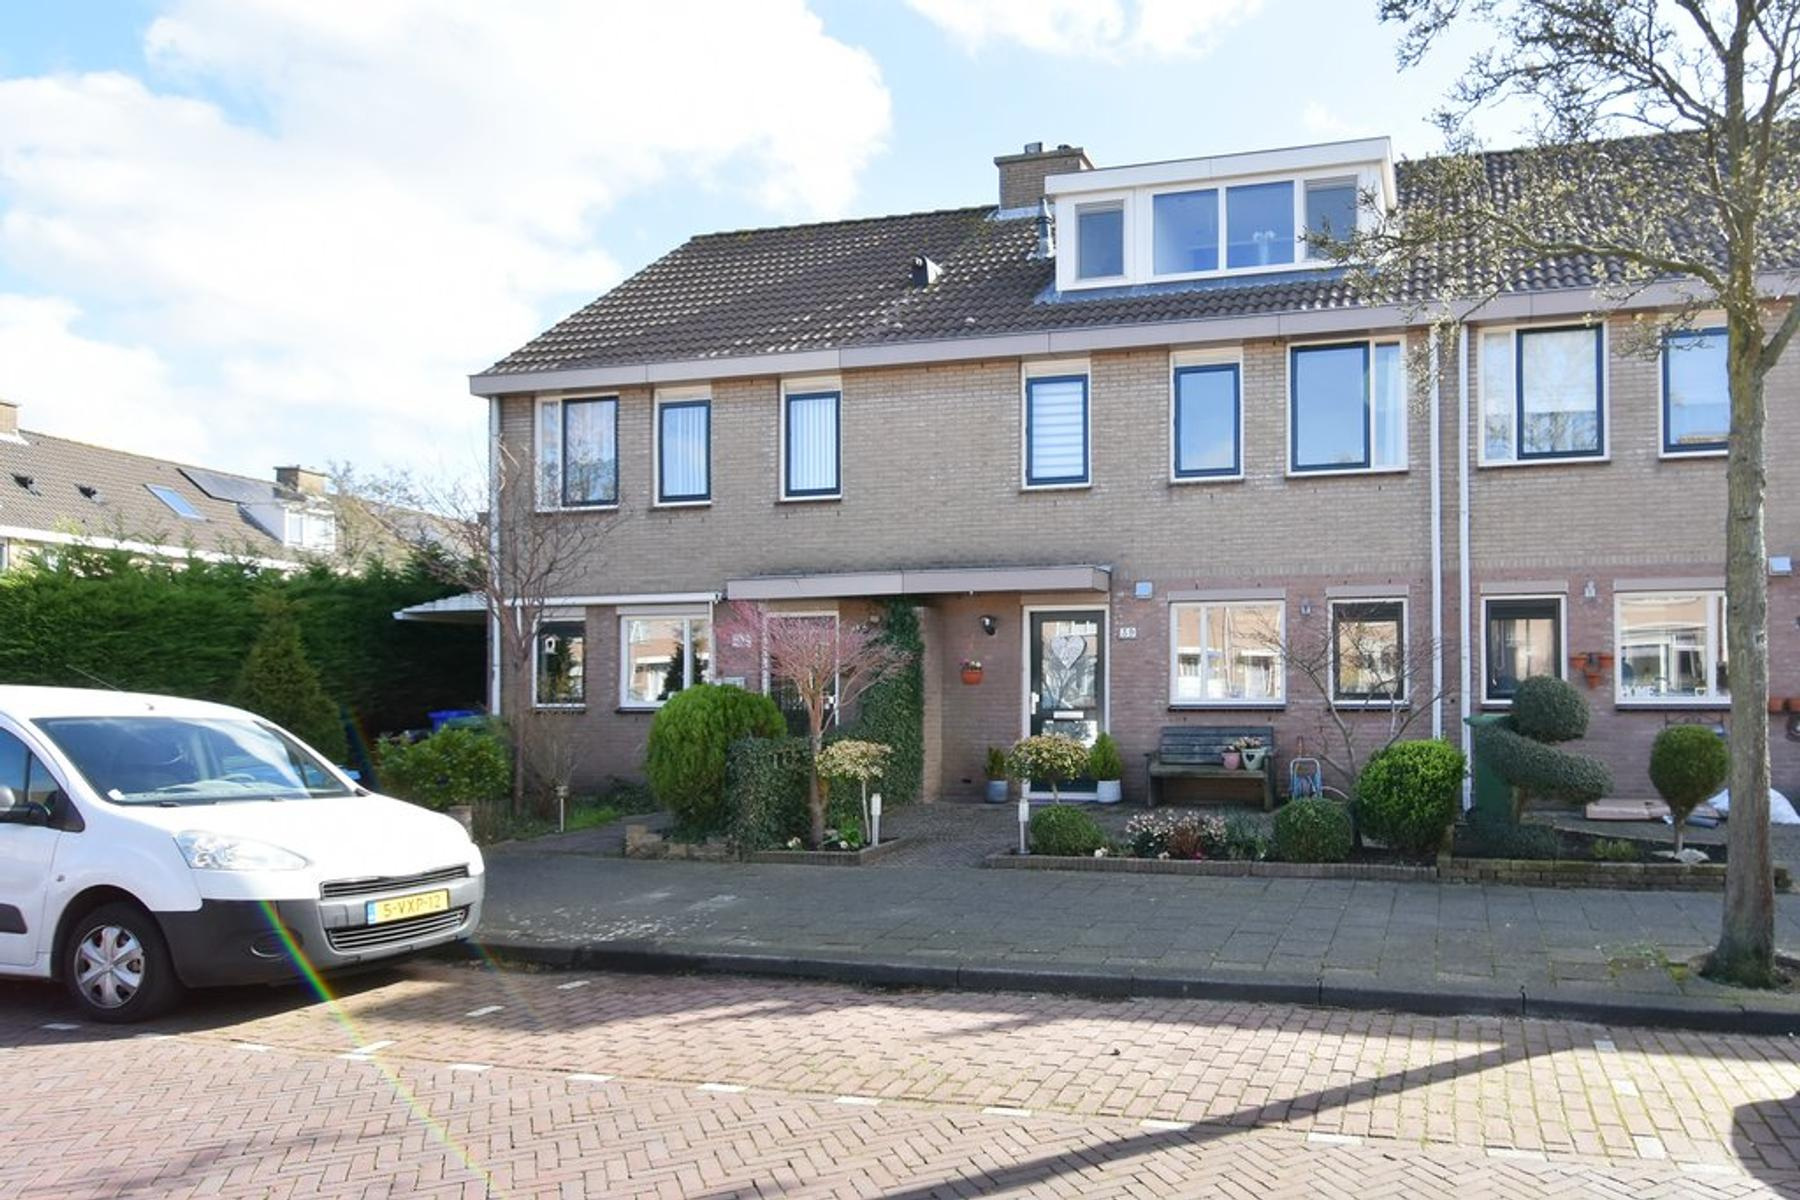 Mr. Beerninkplantsoen 39 in Rijswijk 2286 MJ